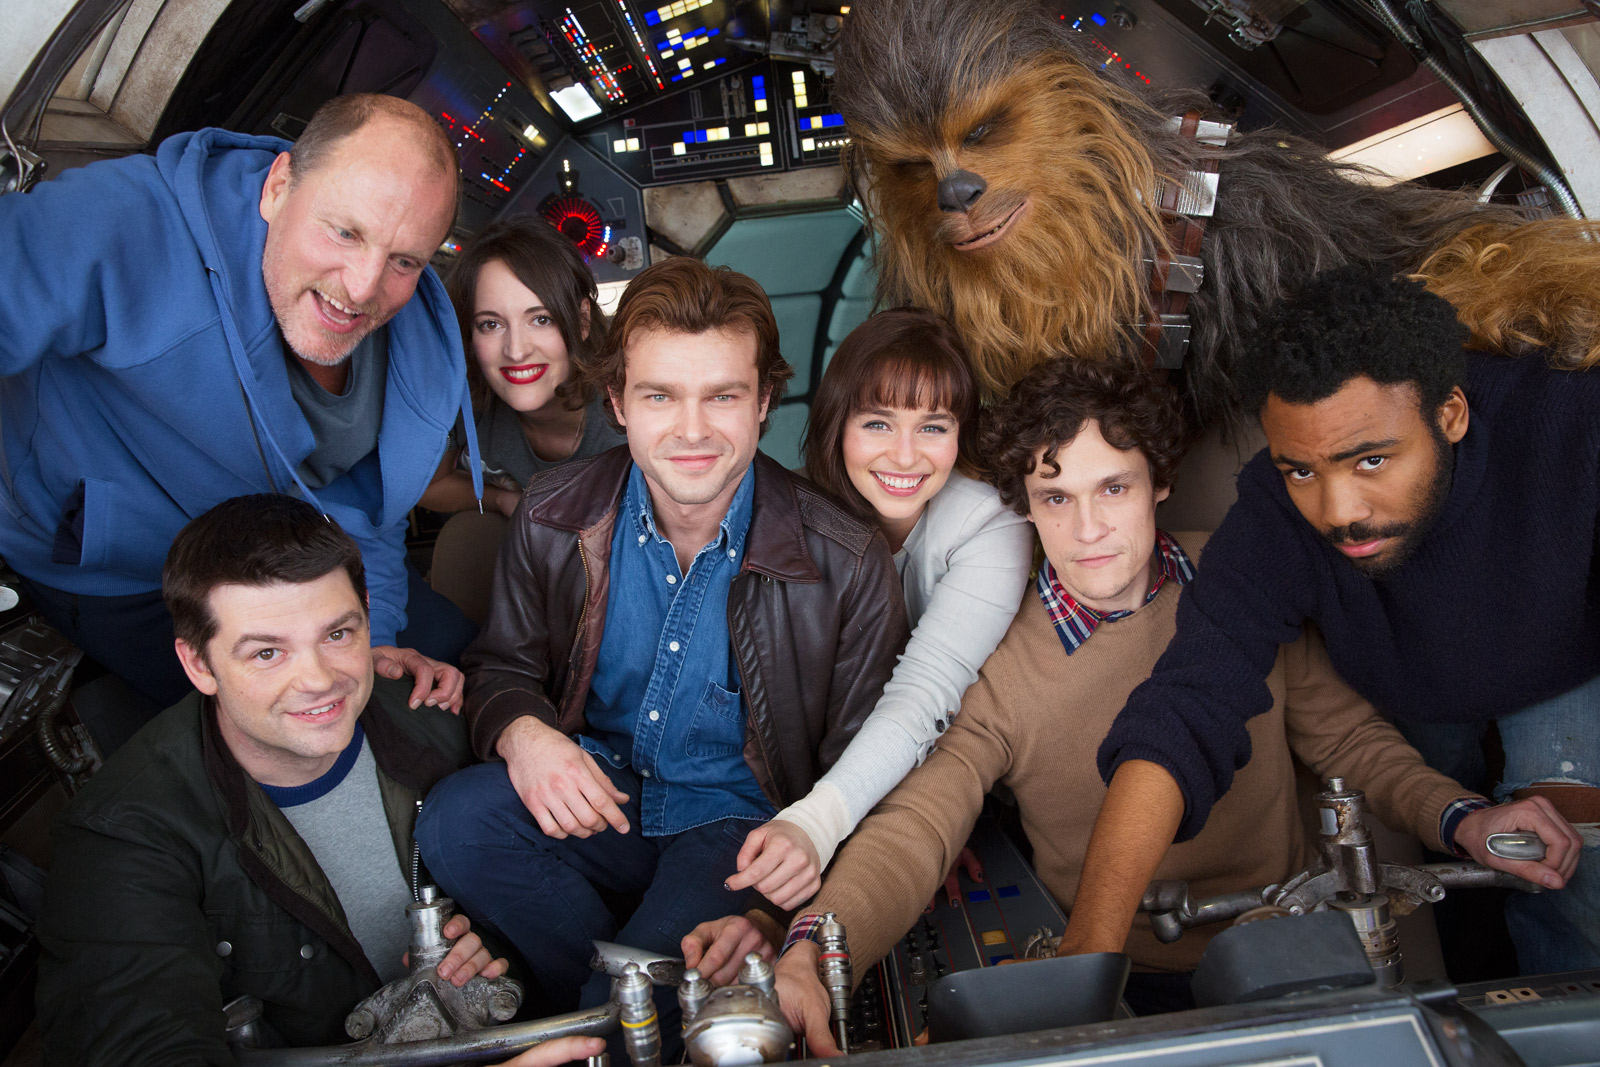 Han Solo movie cast photo